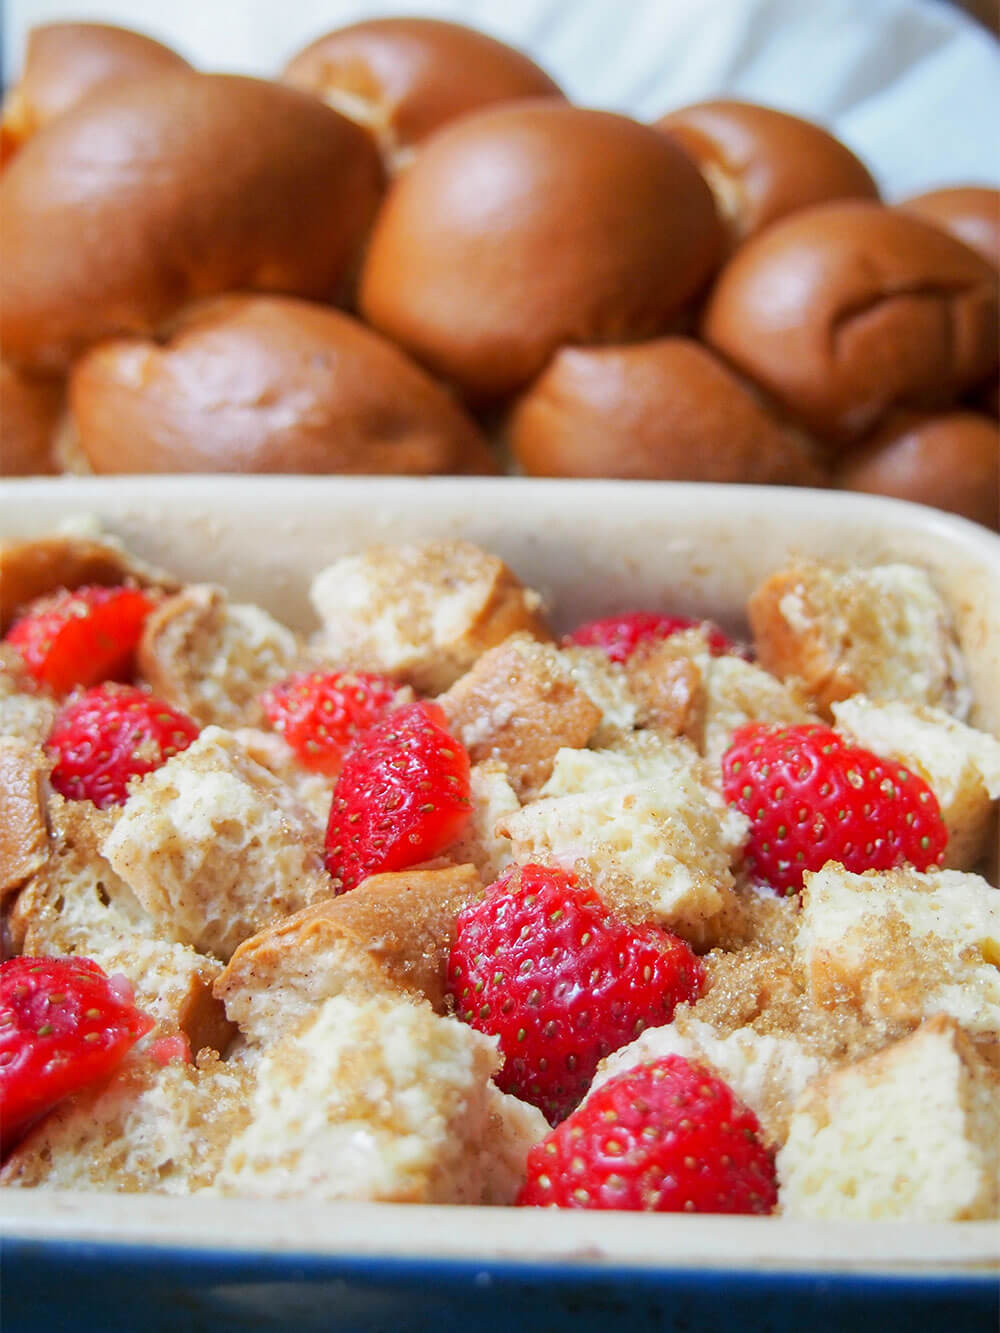 strawberry French toast bake ready to bake